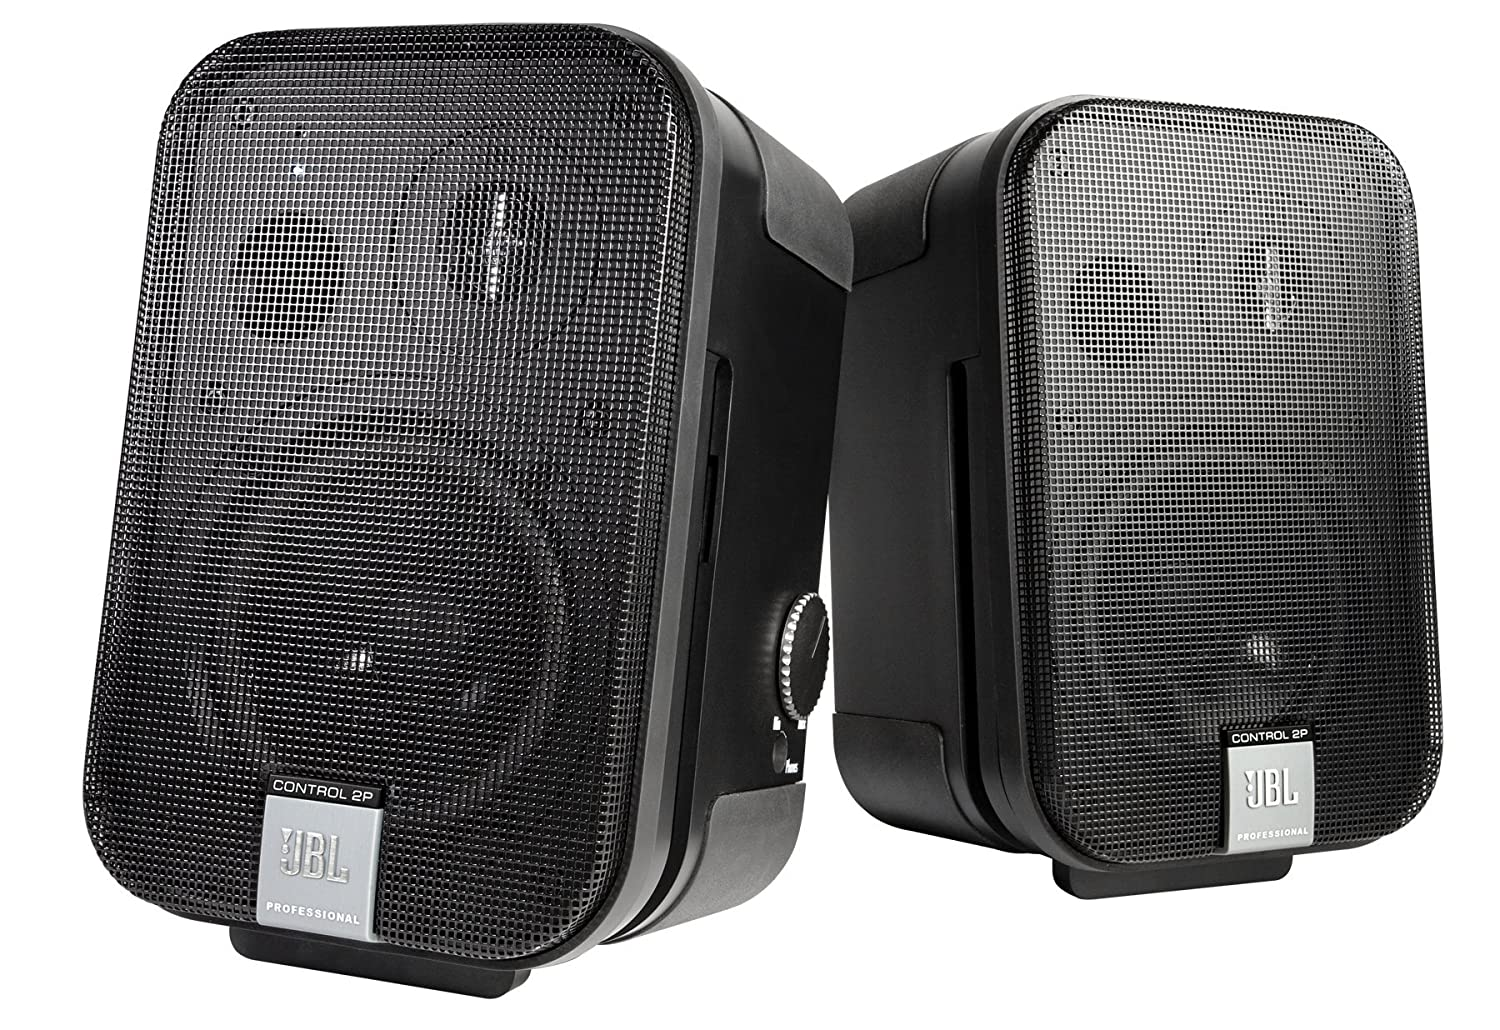 Jbl Professional C2ps Control 2p Compact Powered Monitor Pair Master And Extension Speakers Black Pa Mixer Interface Hookup Gearslutz Pro Audio Community Musical Instruments